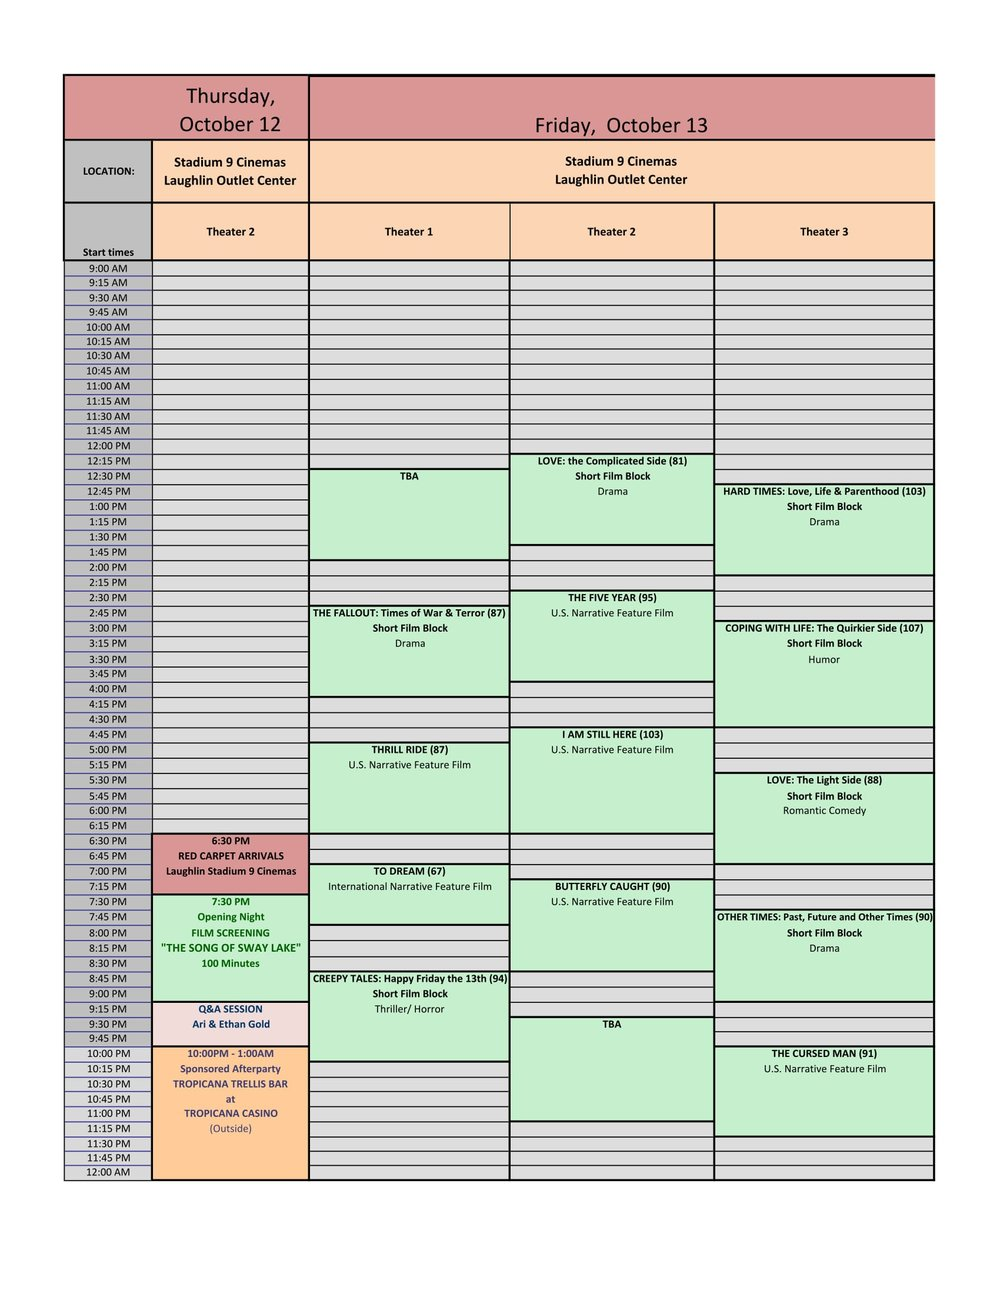 ALL FILMS - ALL DAYS - GRIDS SCHEDULE